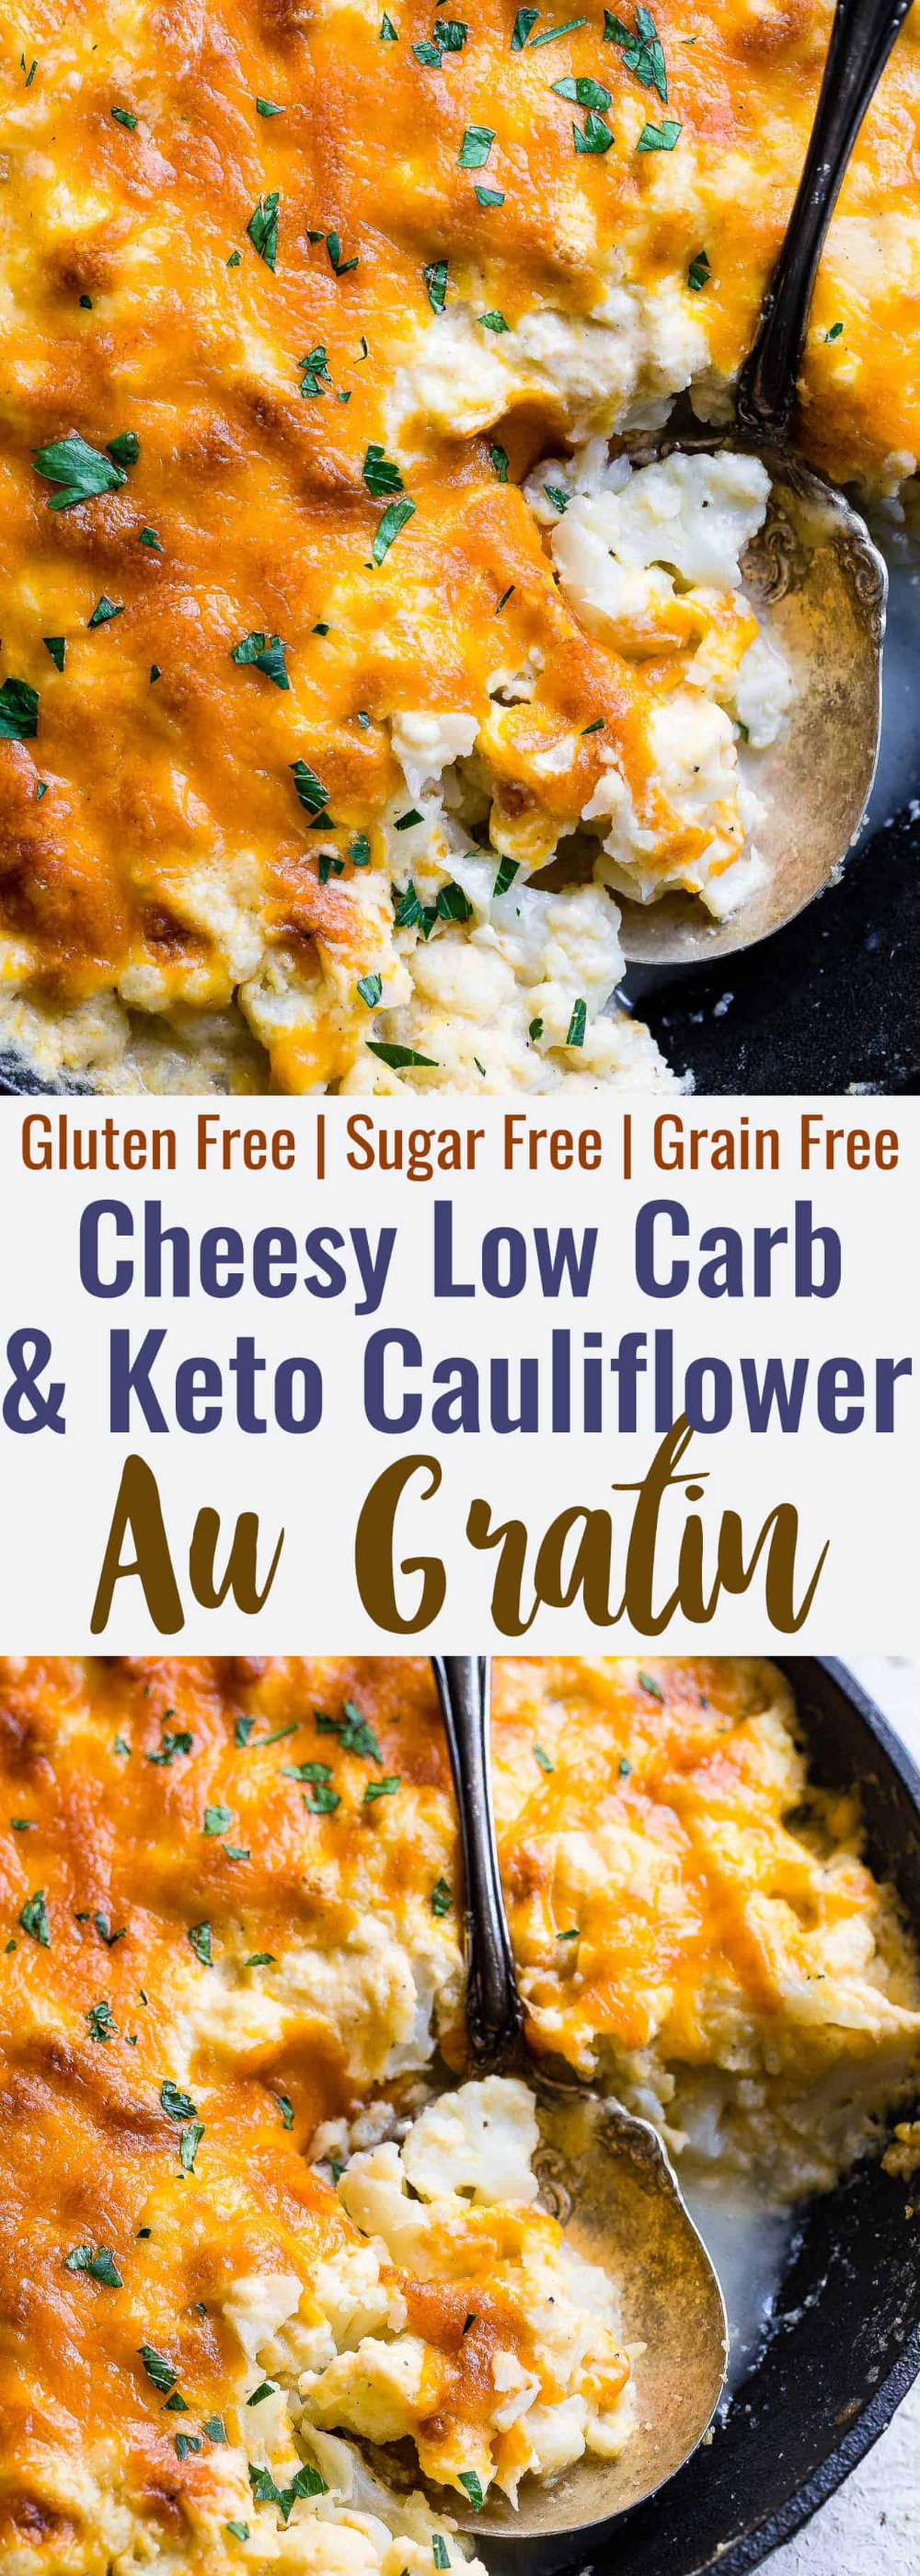 Keto Baked Cauliflower Au Gratin This easy, healthy and